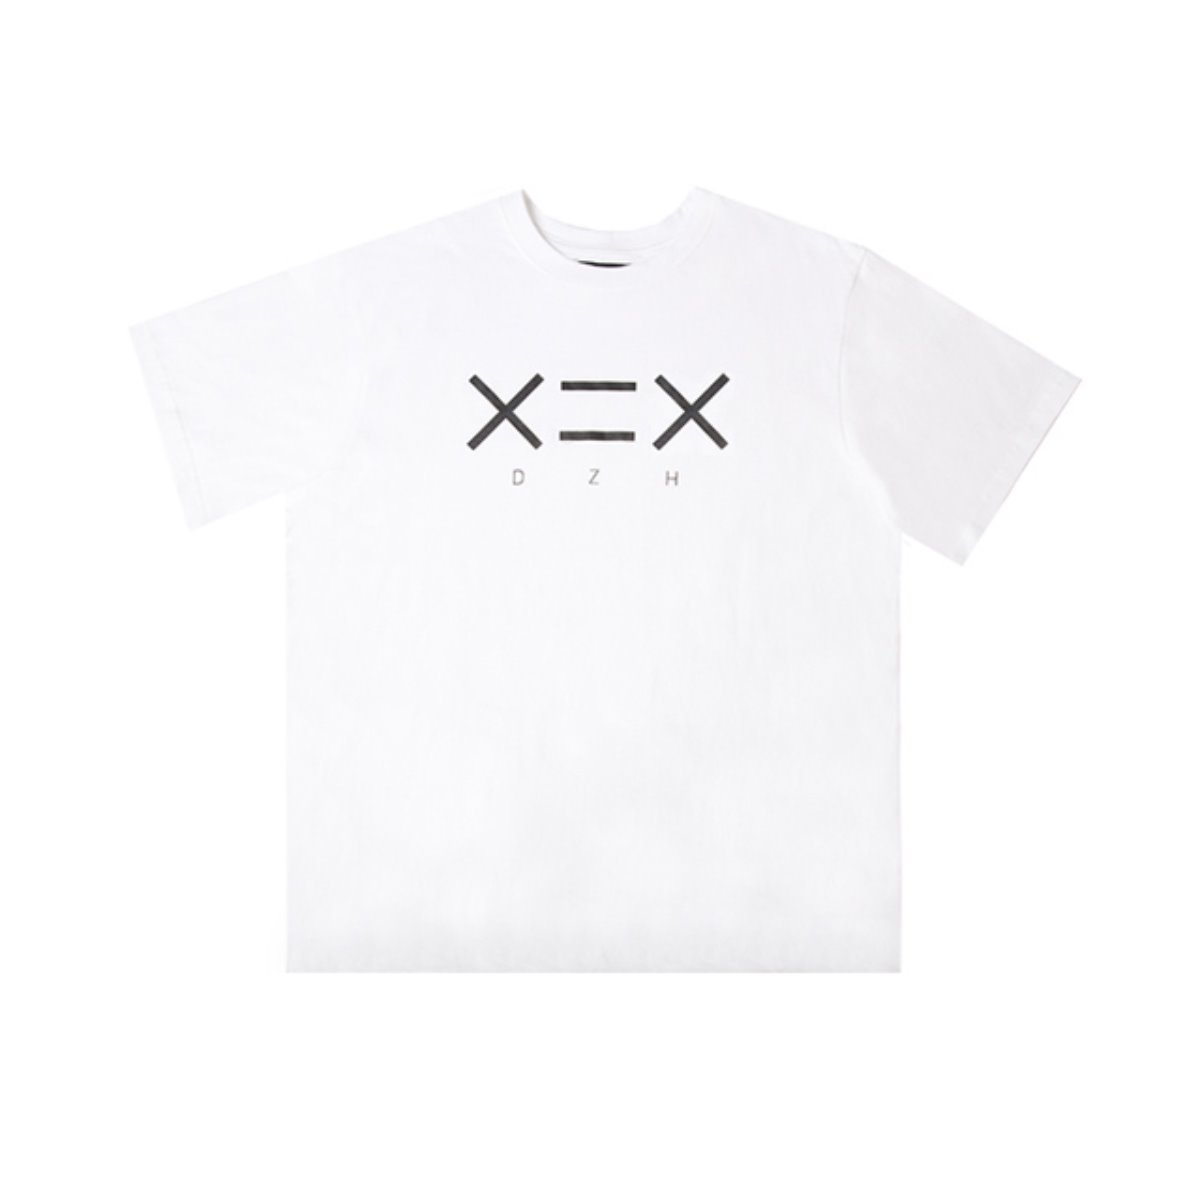 WHITE DZH F/BLACK LOGO T-SHIRTS